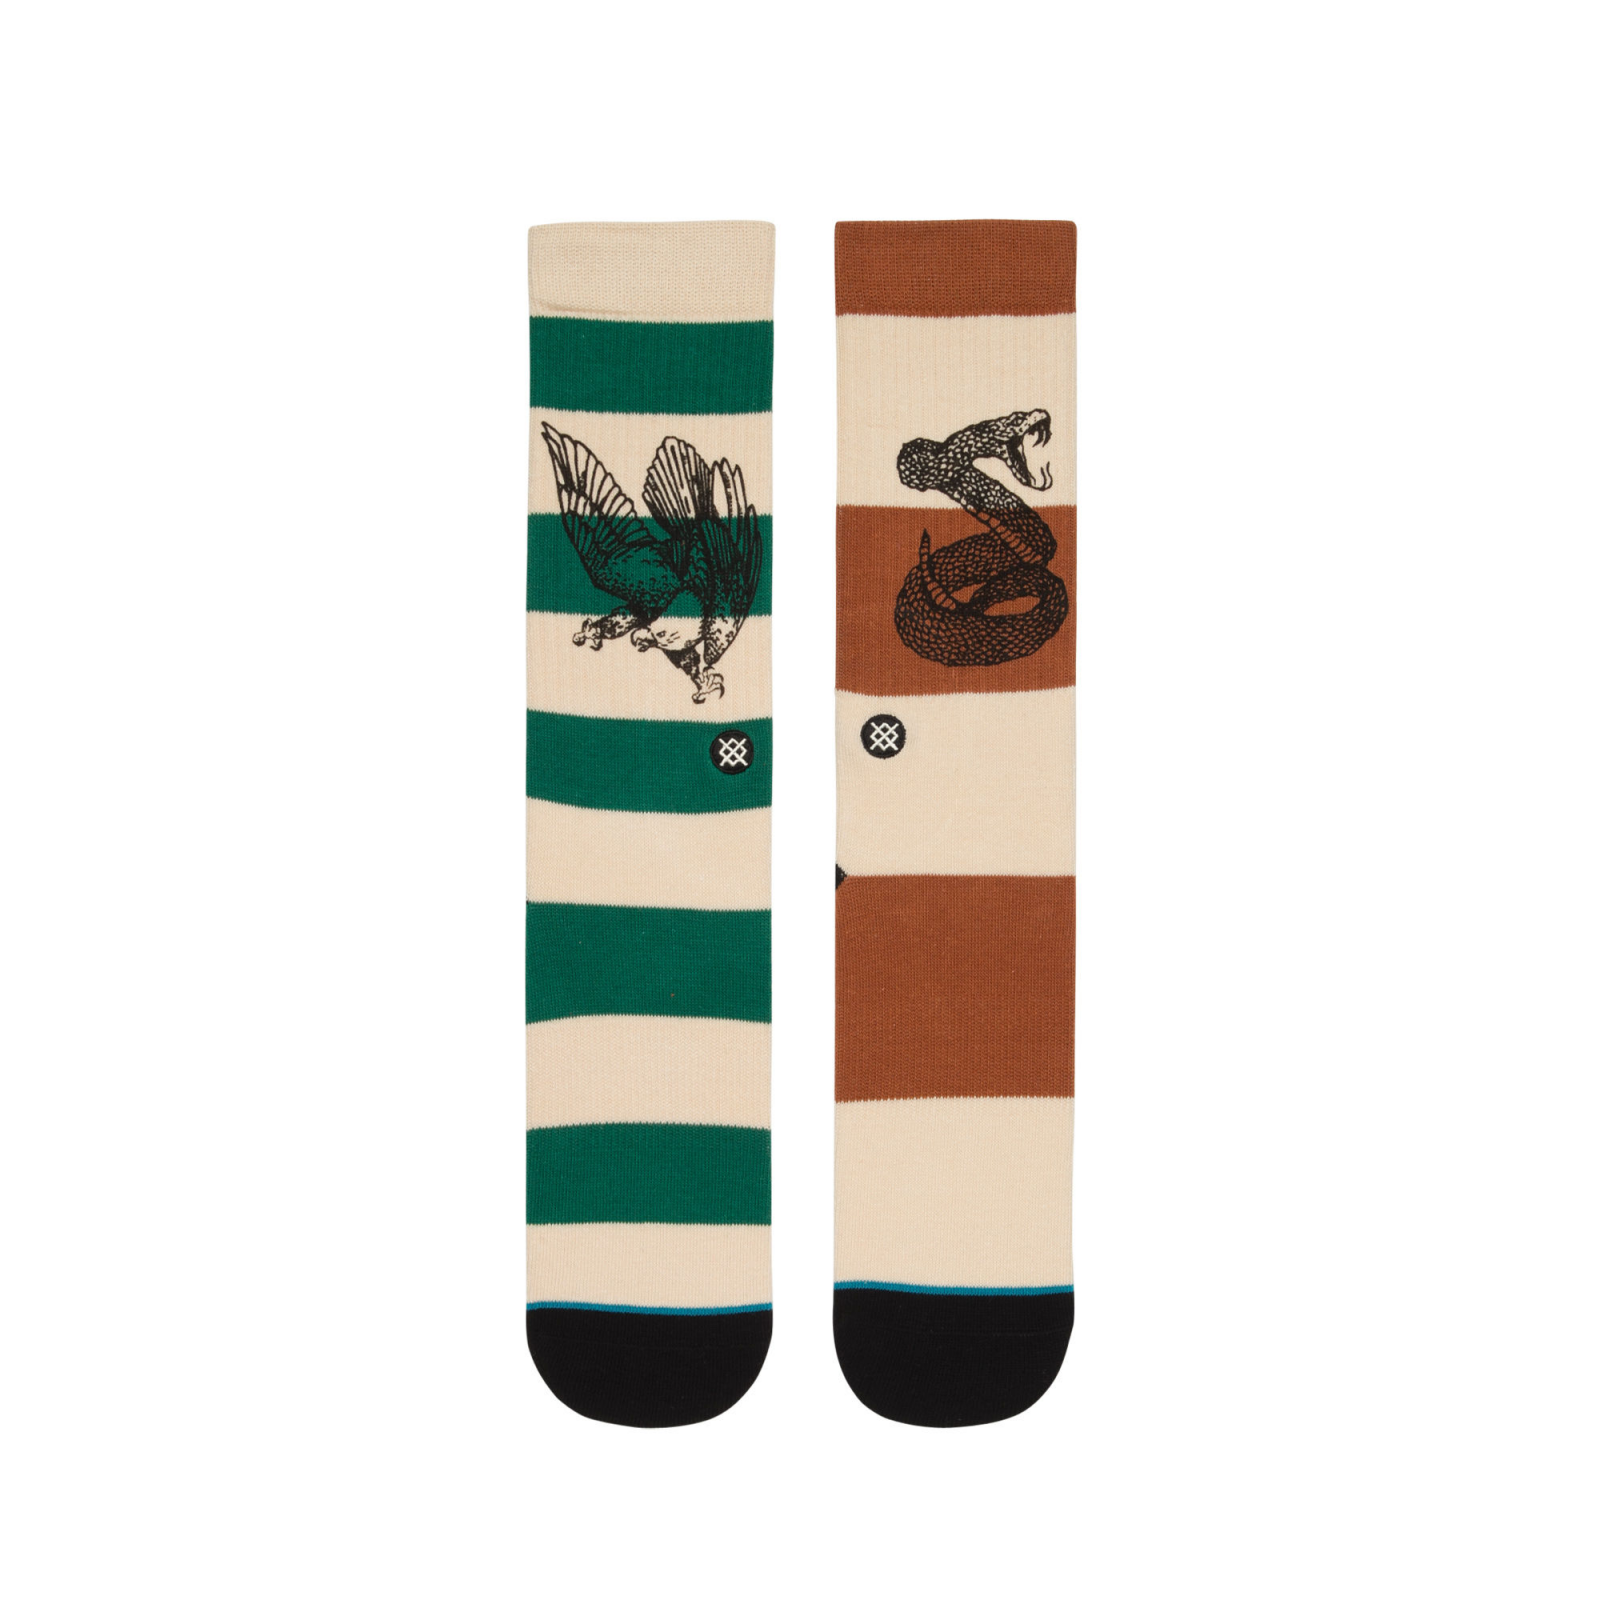 STANCE HECHO SOCK